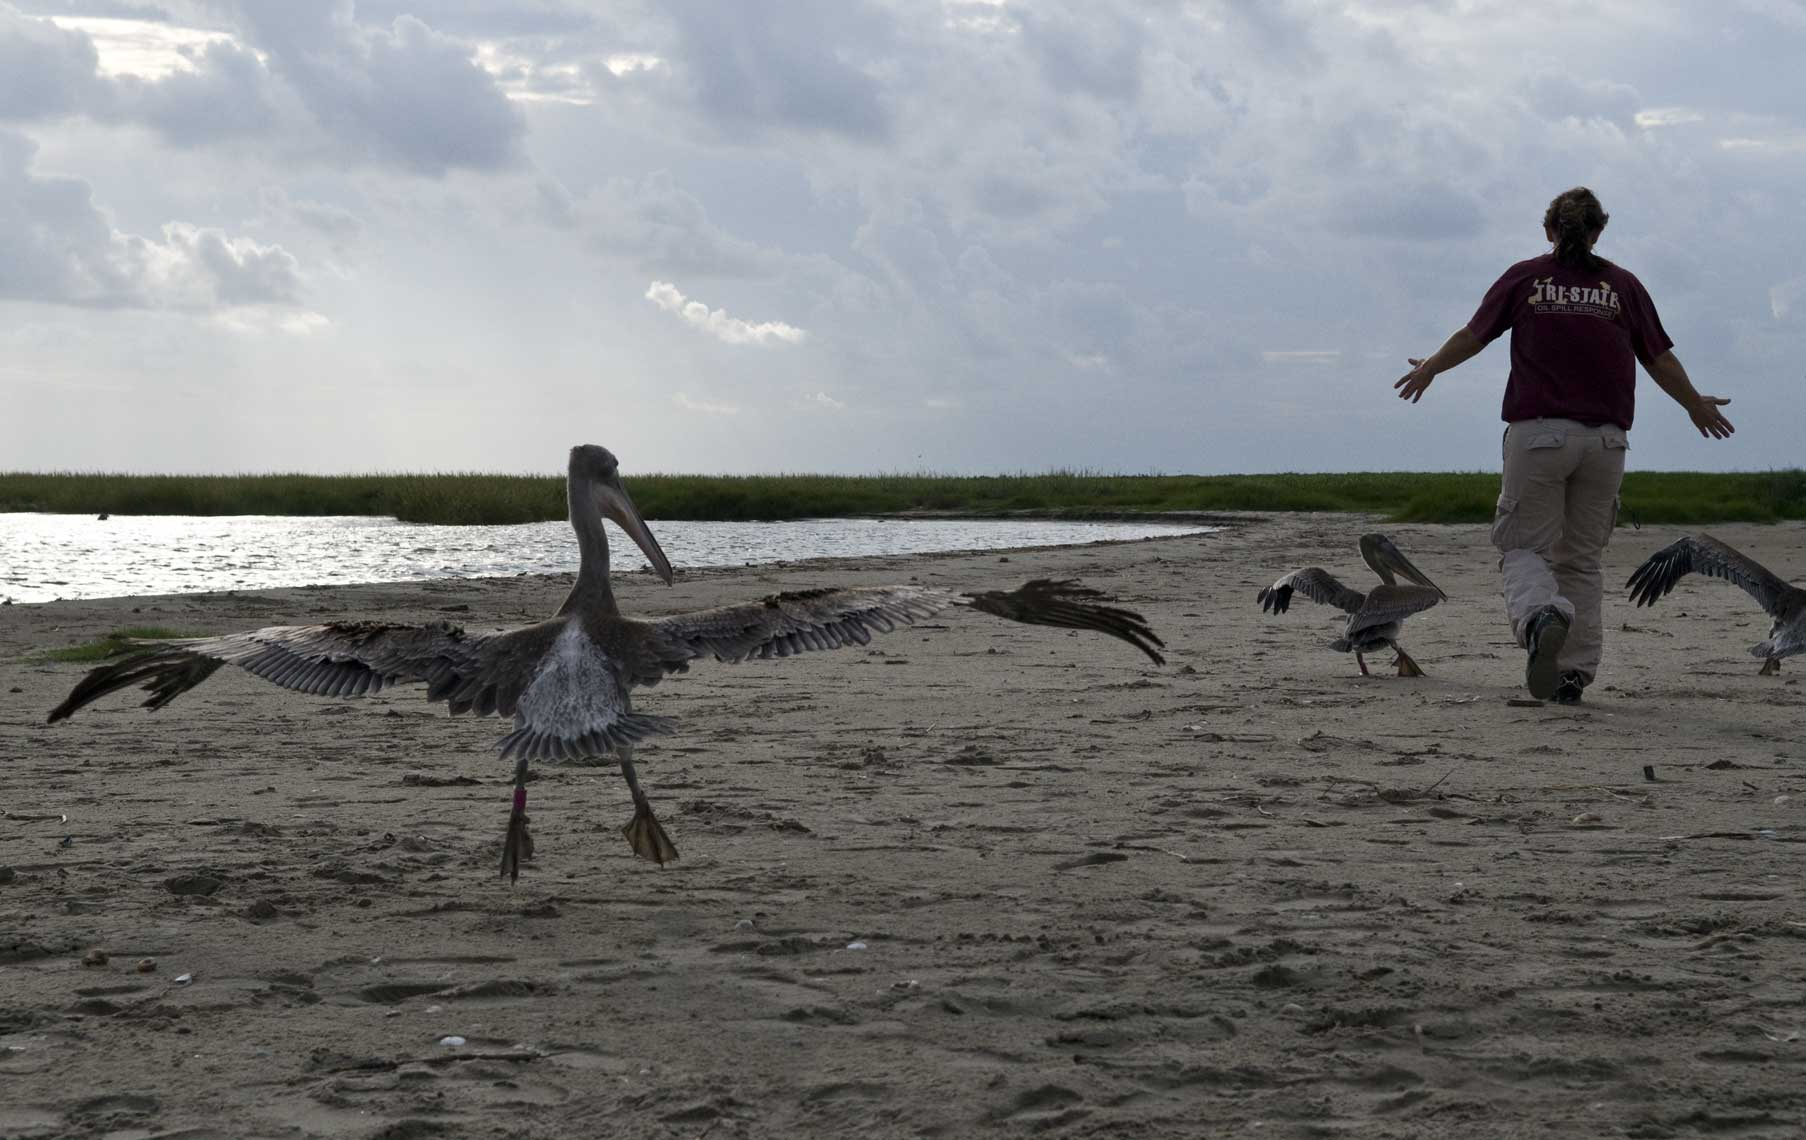 chasing-brown-pelicans-to-fly-away-during-their-release